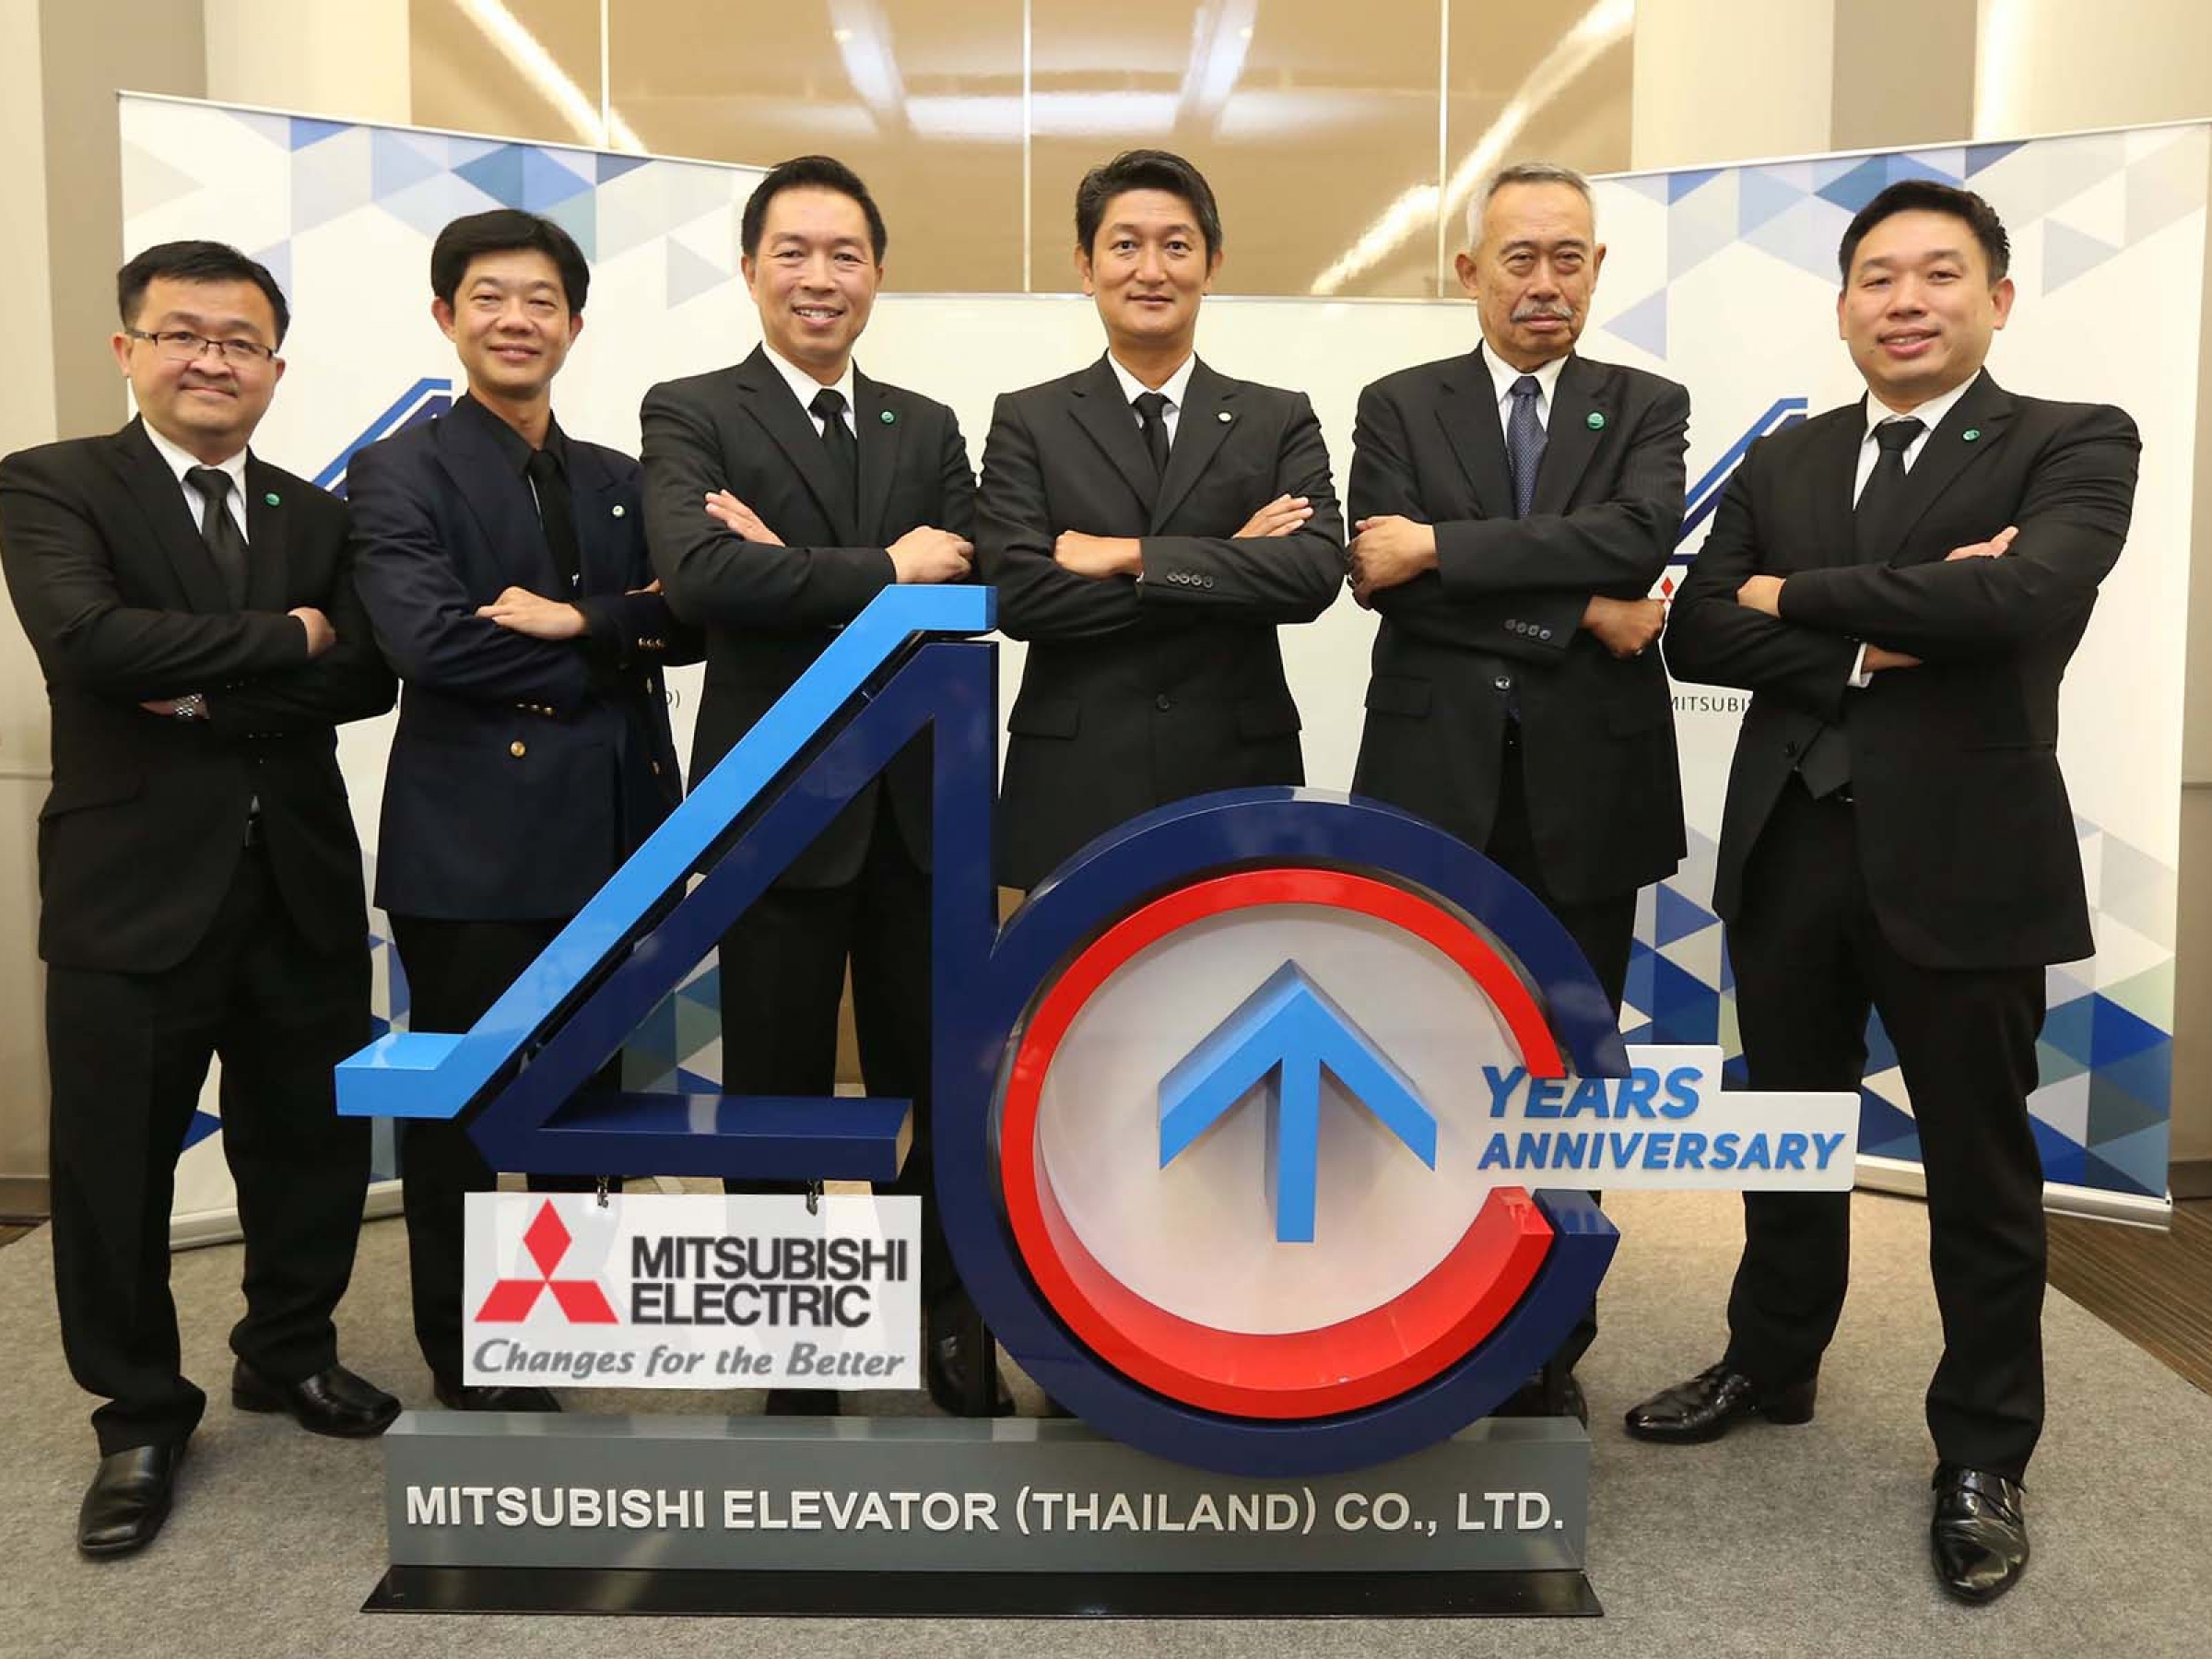 Mitsubishi Elevator (Thailand) Press Conference on business direction for the 40th Anniversary